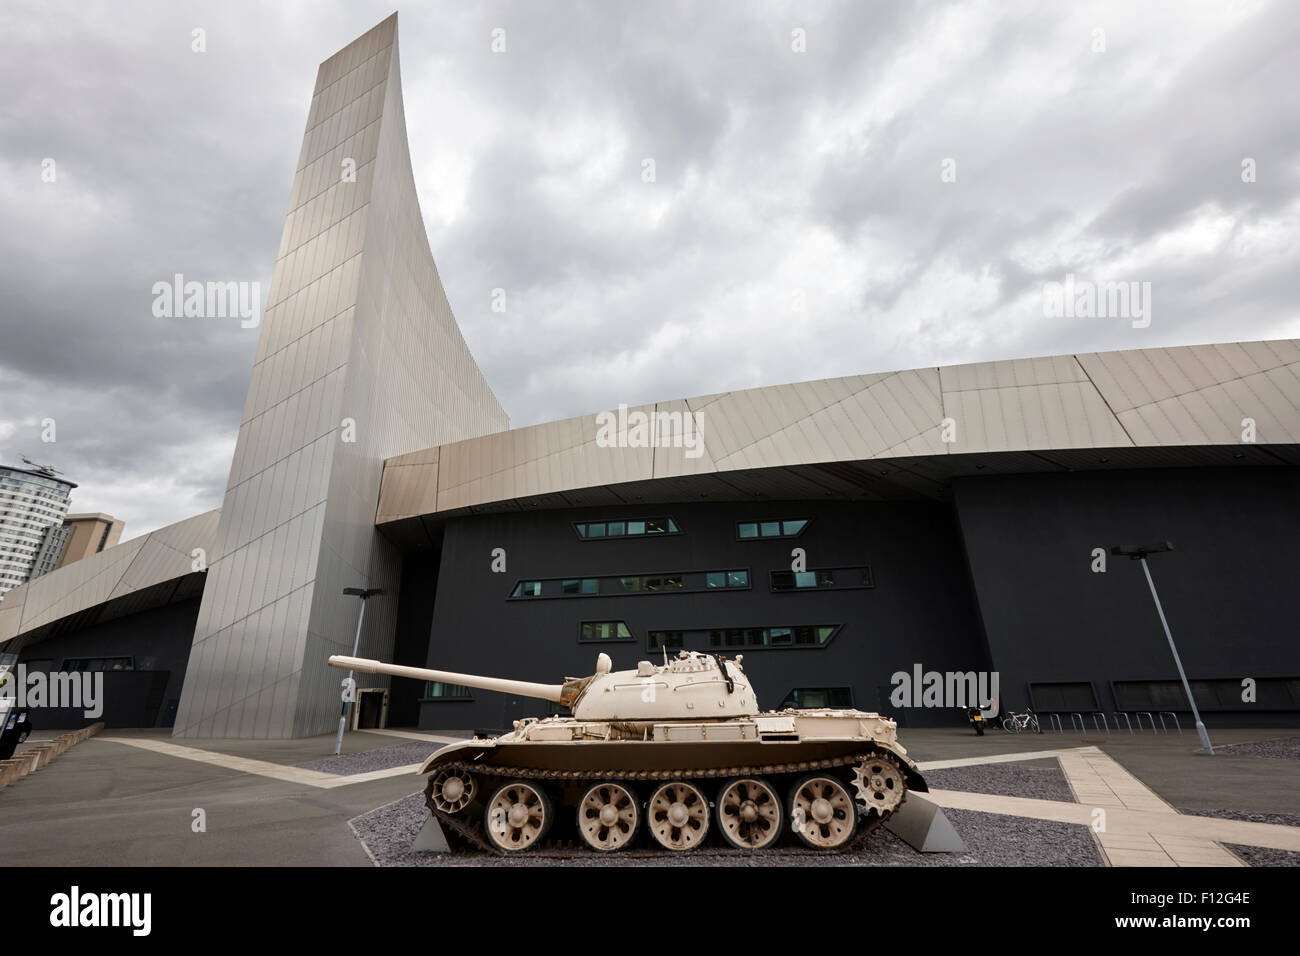 imperial war museum north iwm Manchester uk - Stock Image